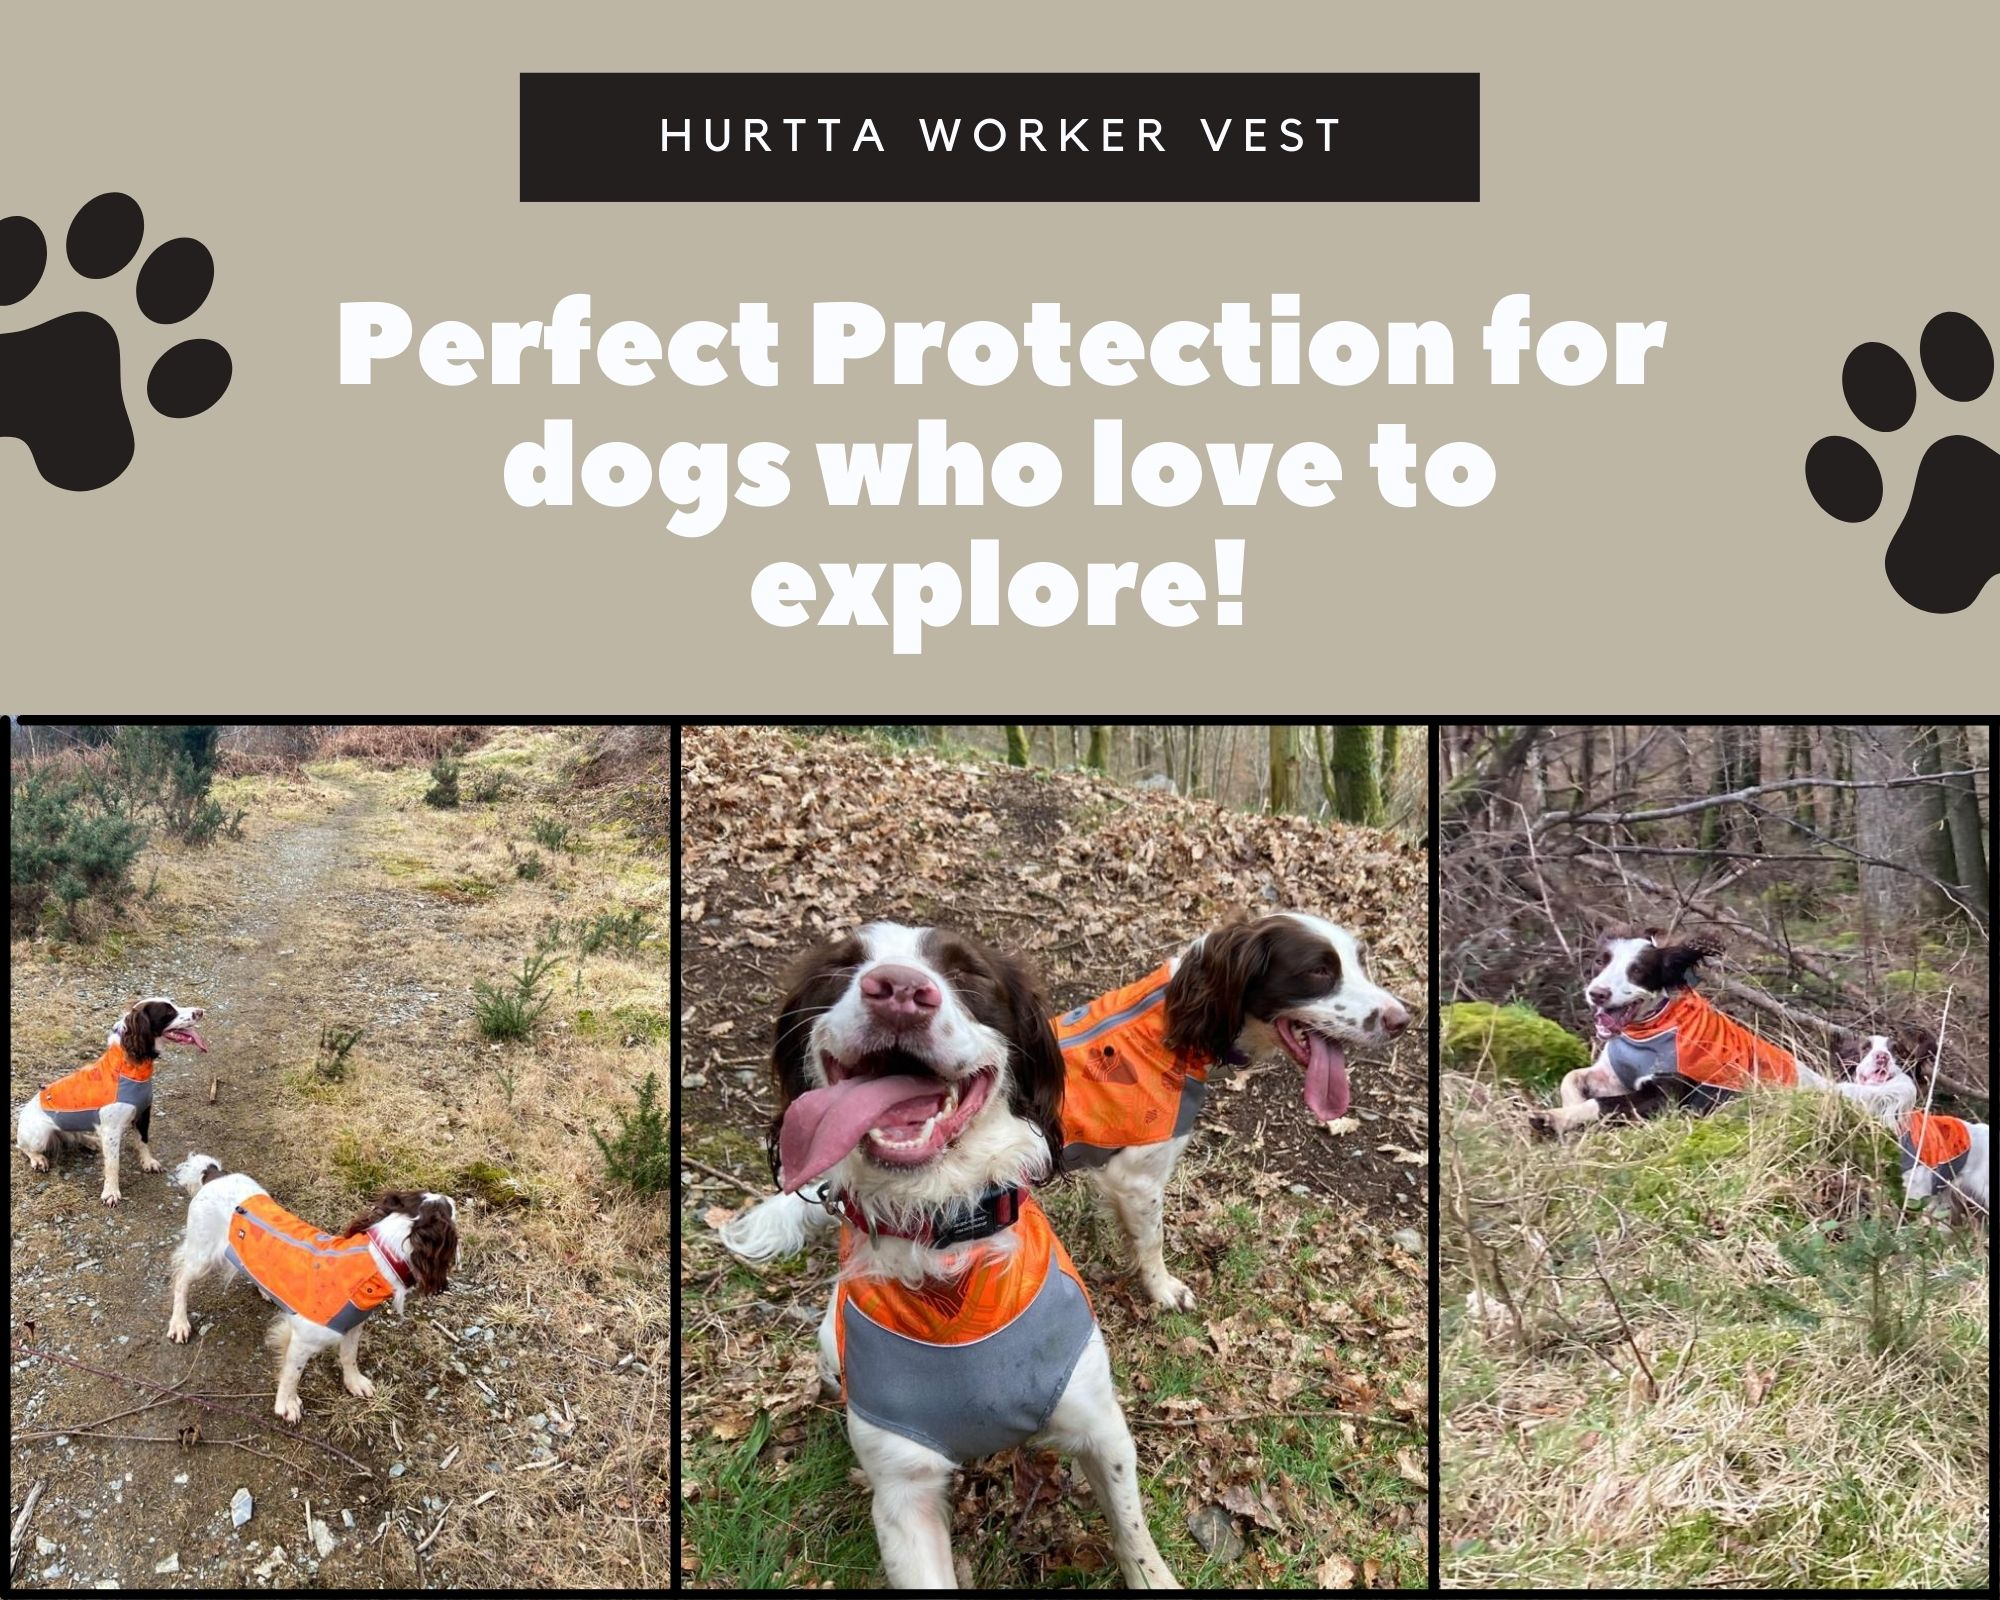 Hurtta Worker Vest spaniels in woods protection